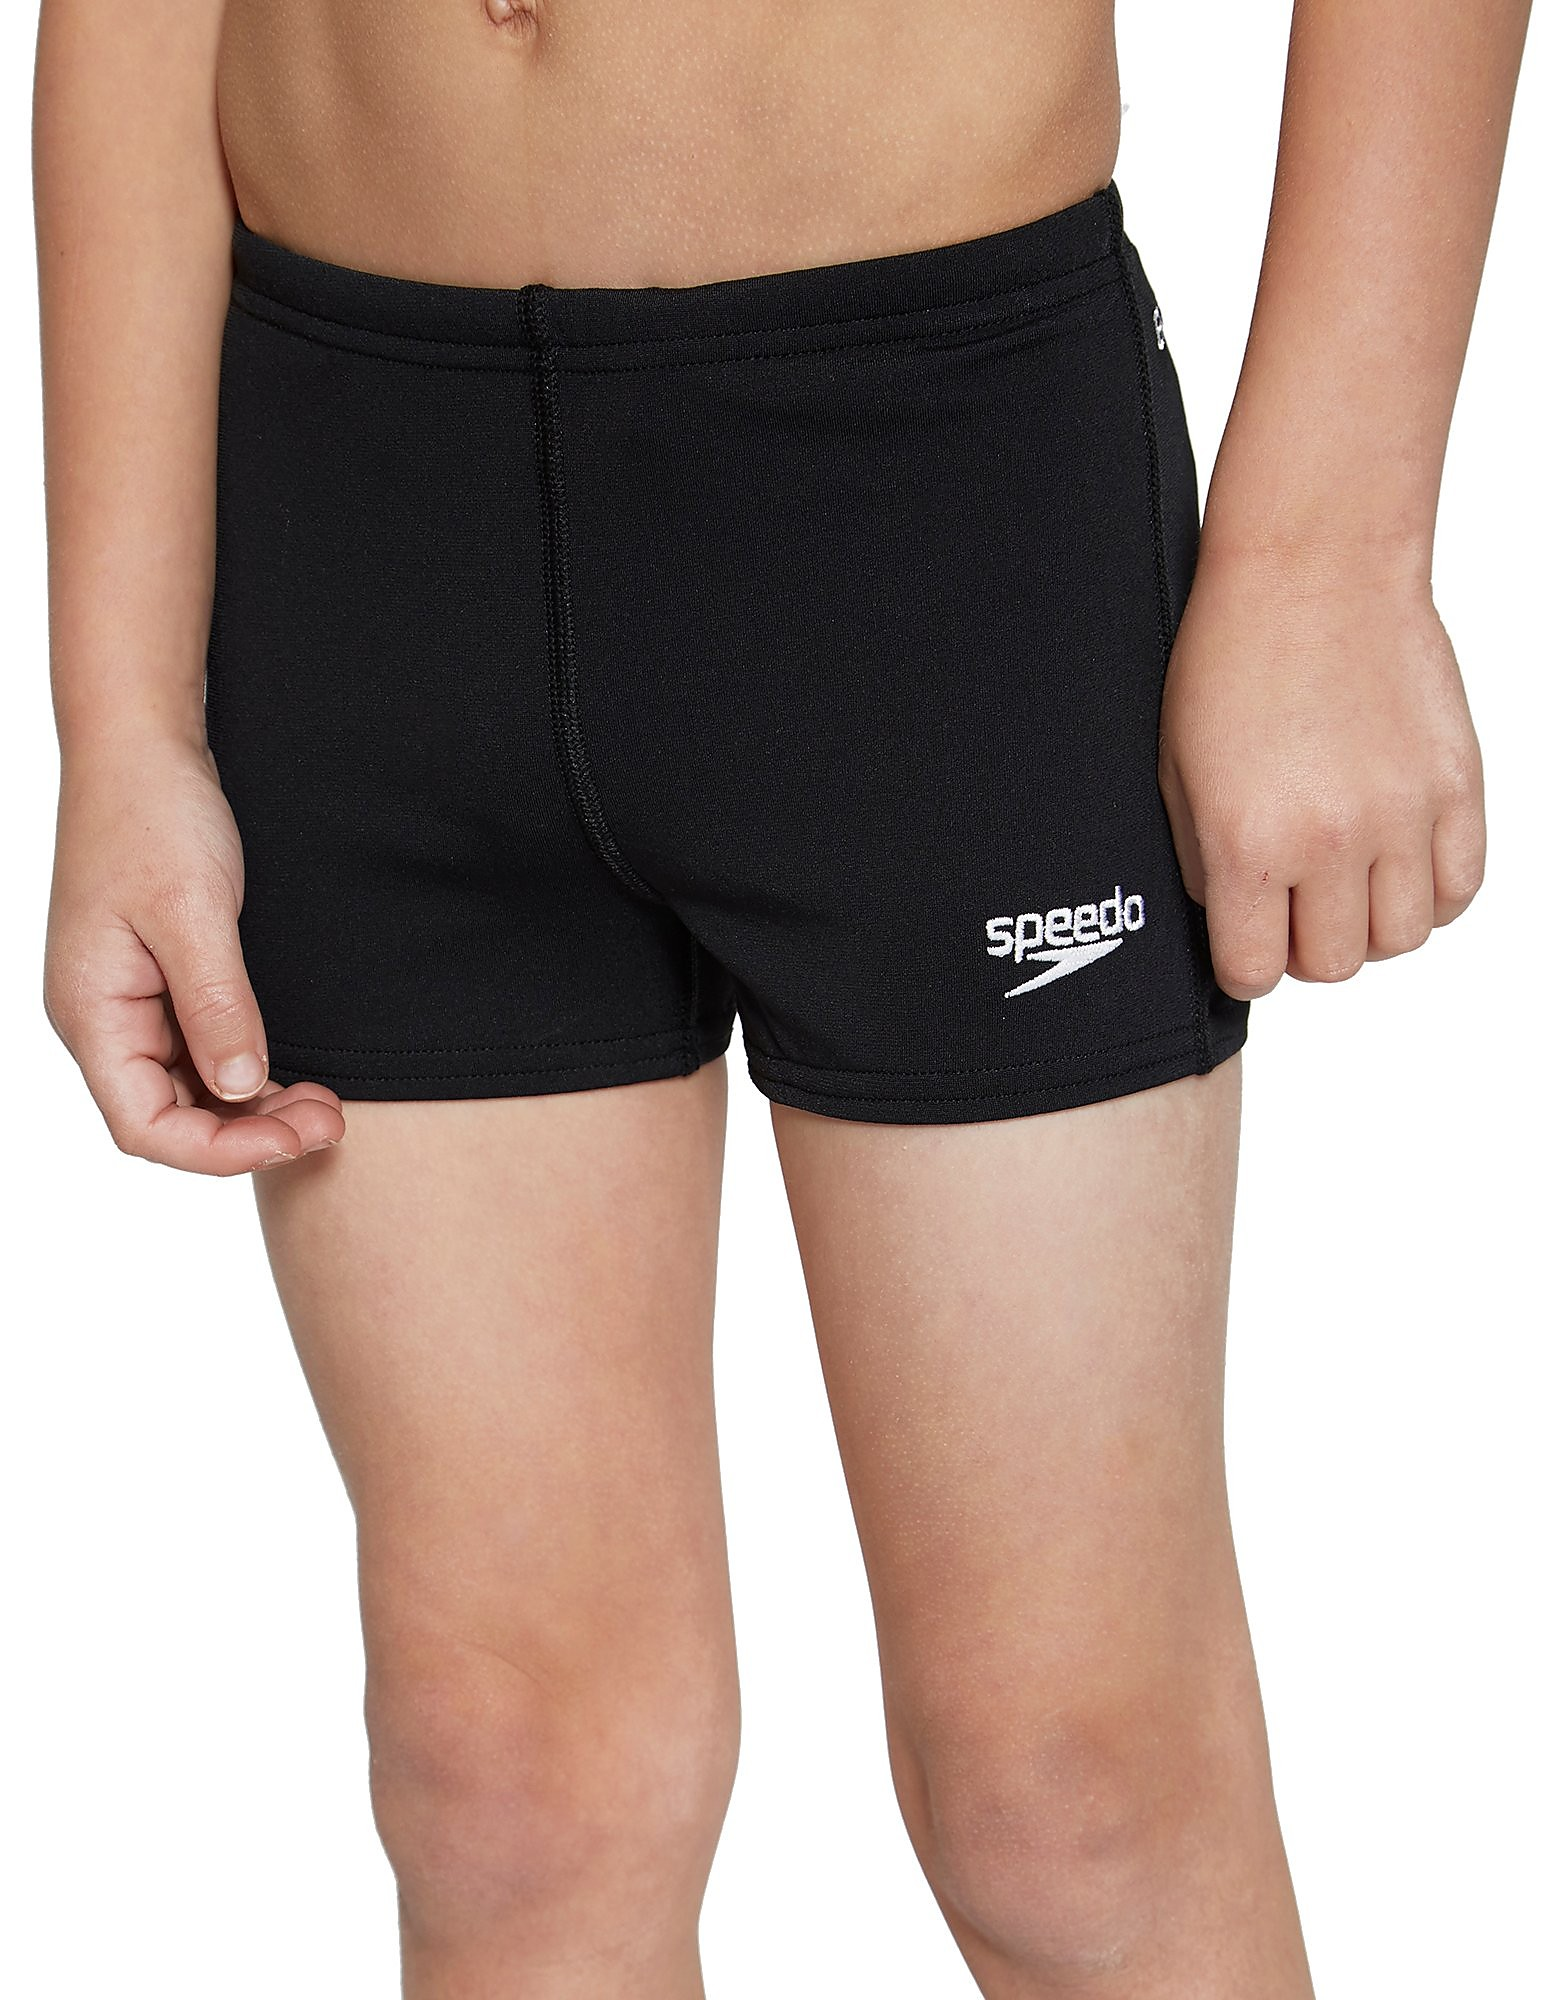 Speedo Endurance+ Aqua Swim Shorts Junior